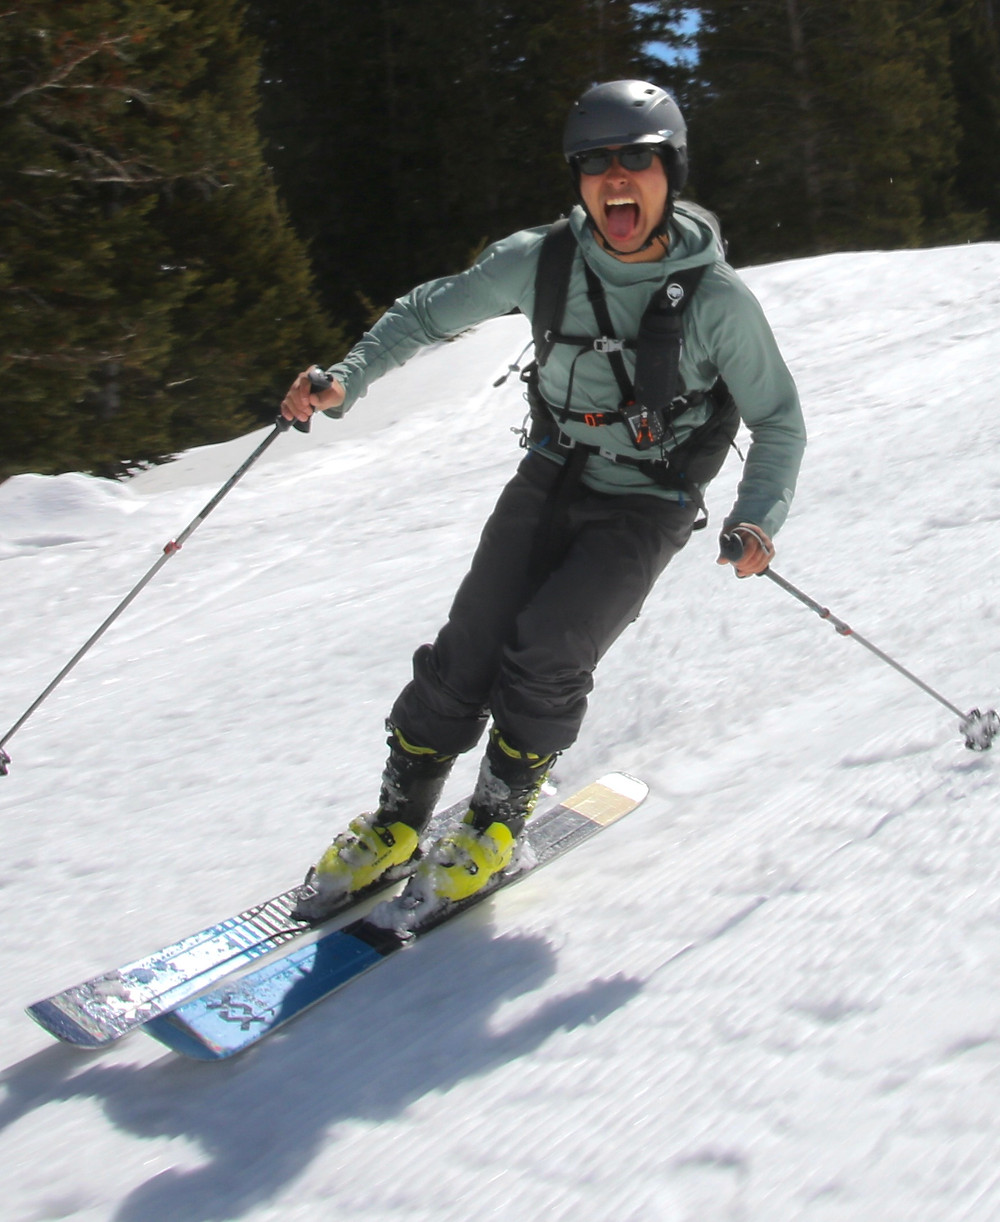 some great skiing